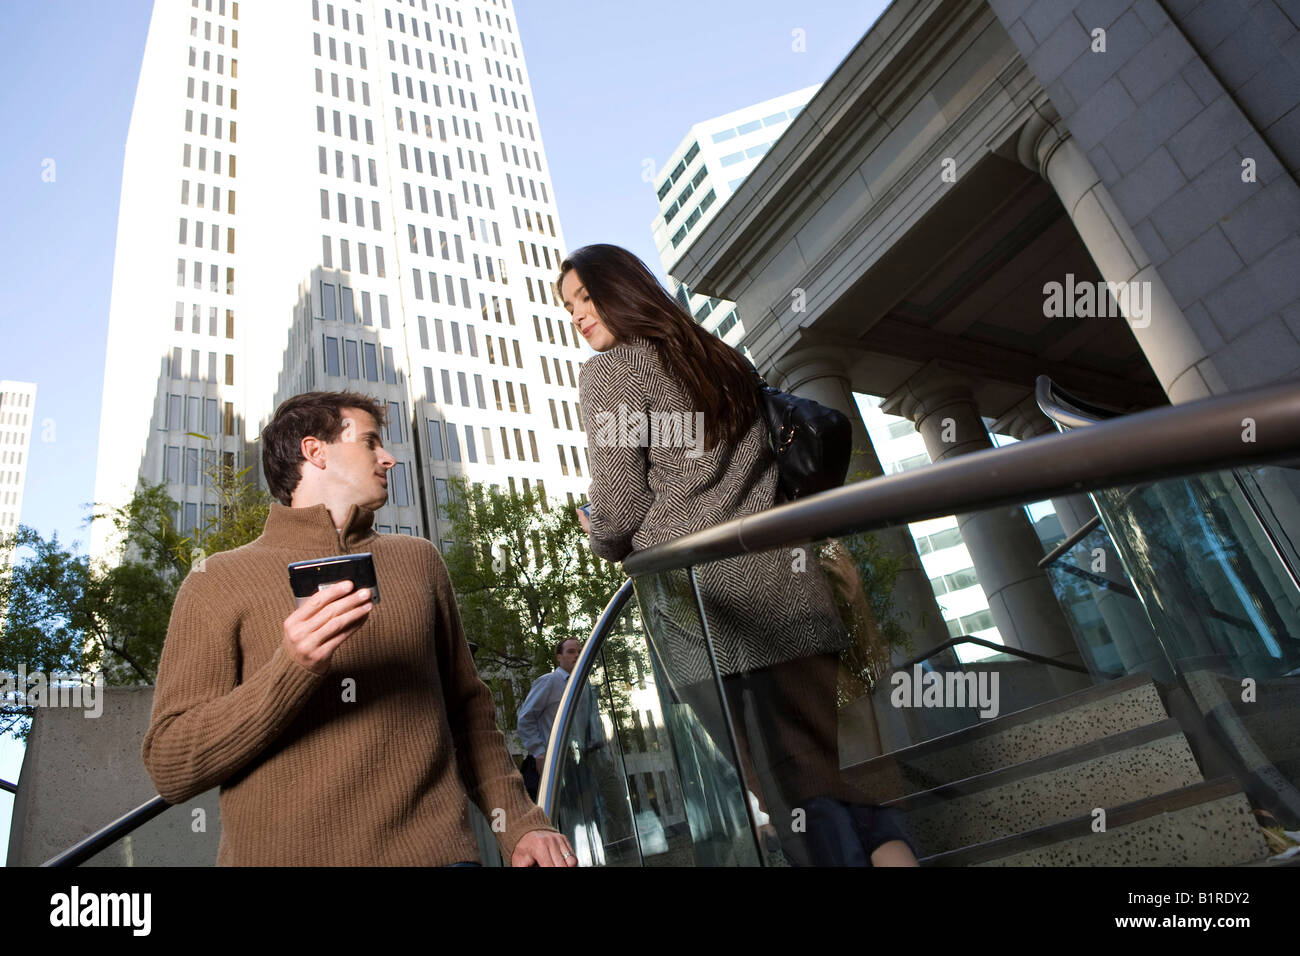 A young man and woman pass each other on a stairwell in a metropolitan area carrying hand held devices. - Stock Image